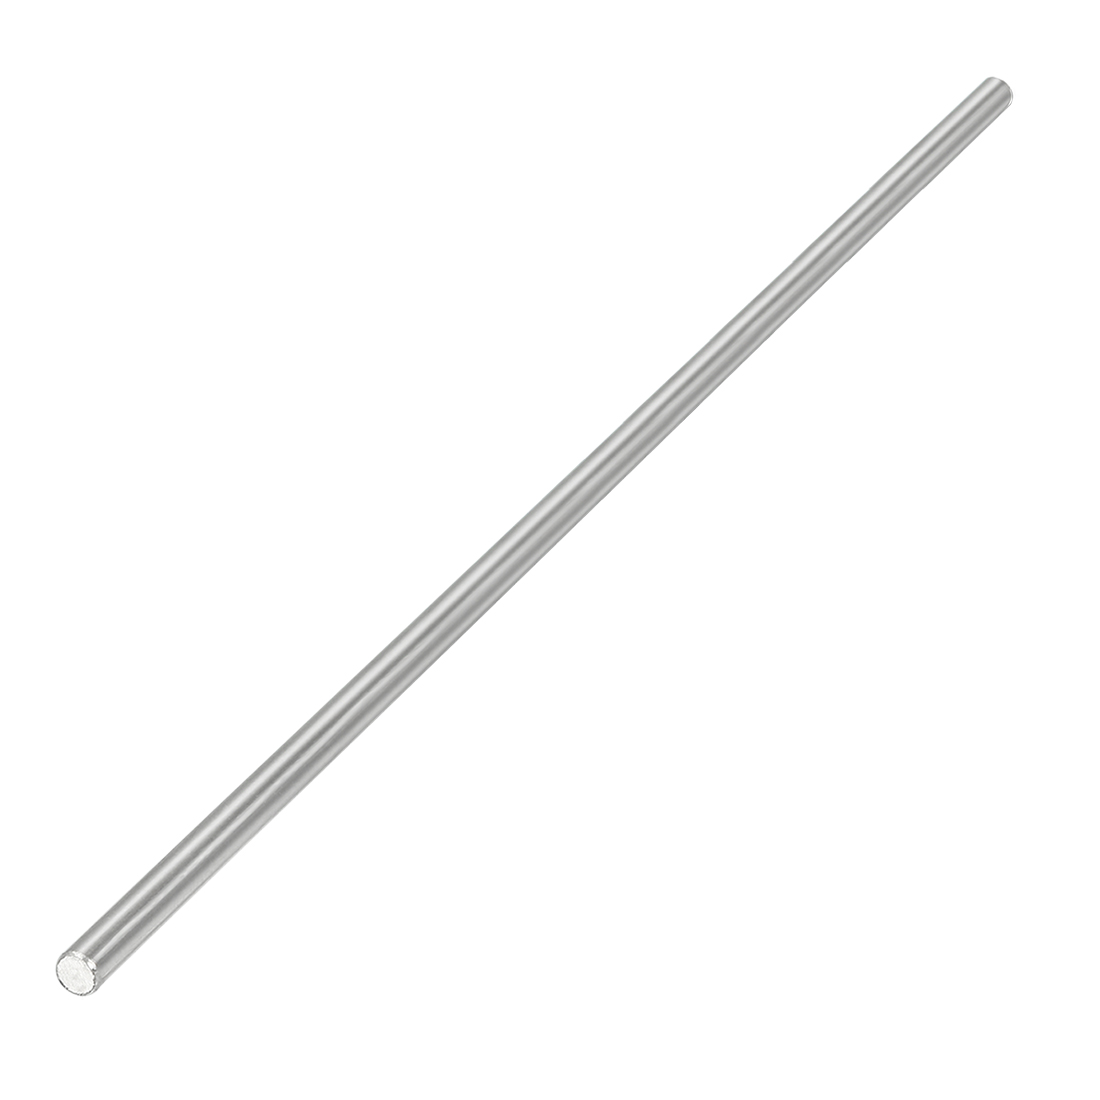 2.5mm Dia 150mm Length Stainless Steel Solid Round Shaft Rod for RC Model Toy